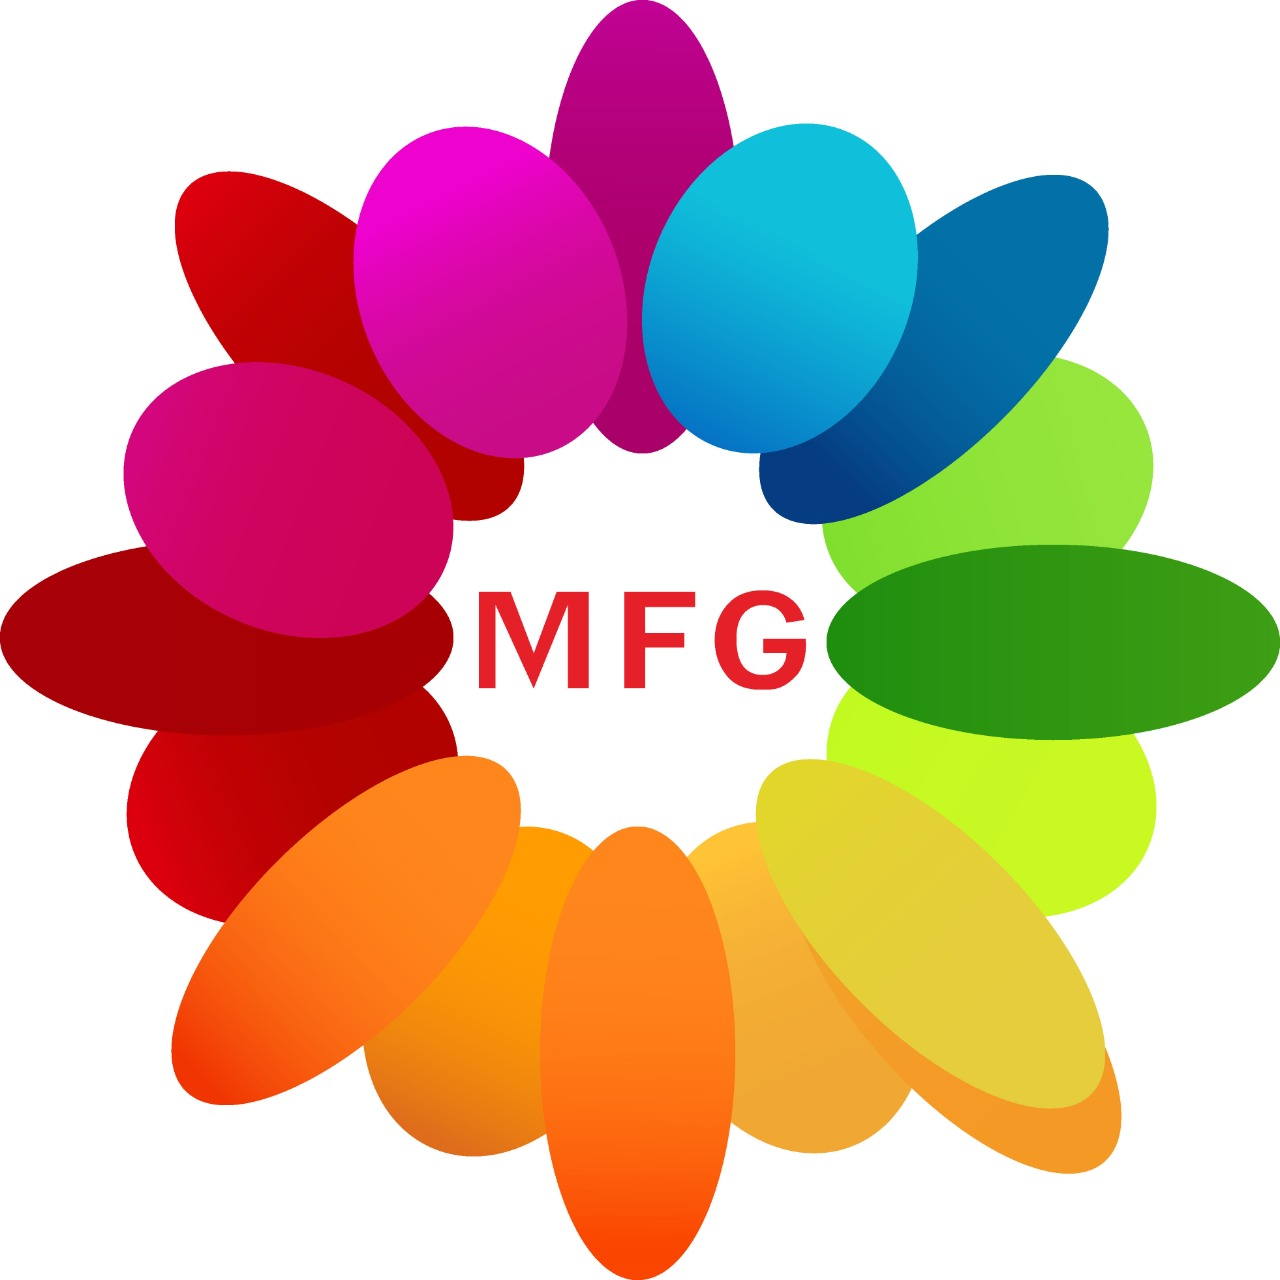 1 kg choco vanilla cake with 6 inch height teddy bear